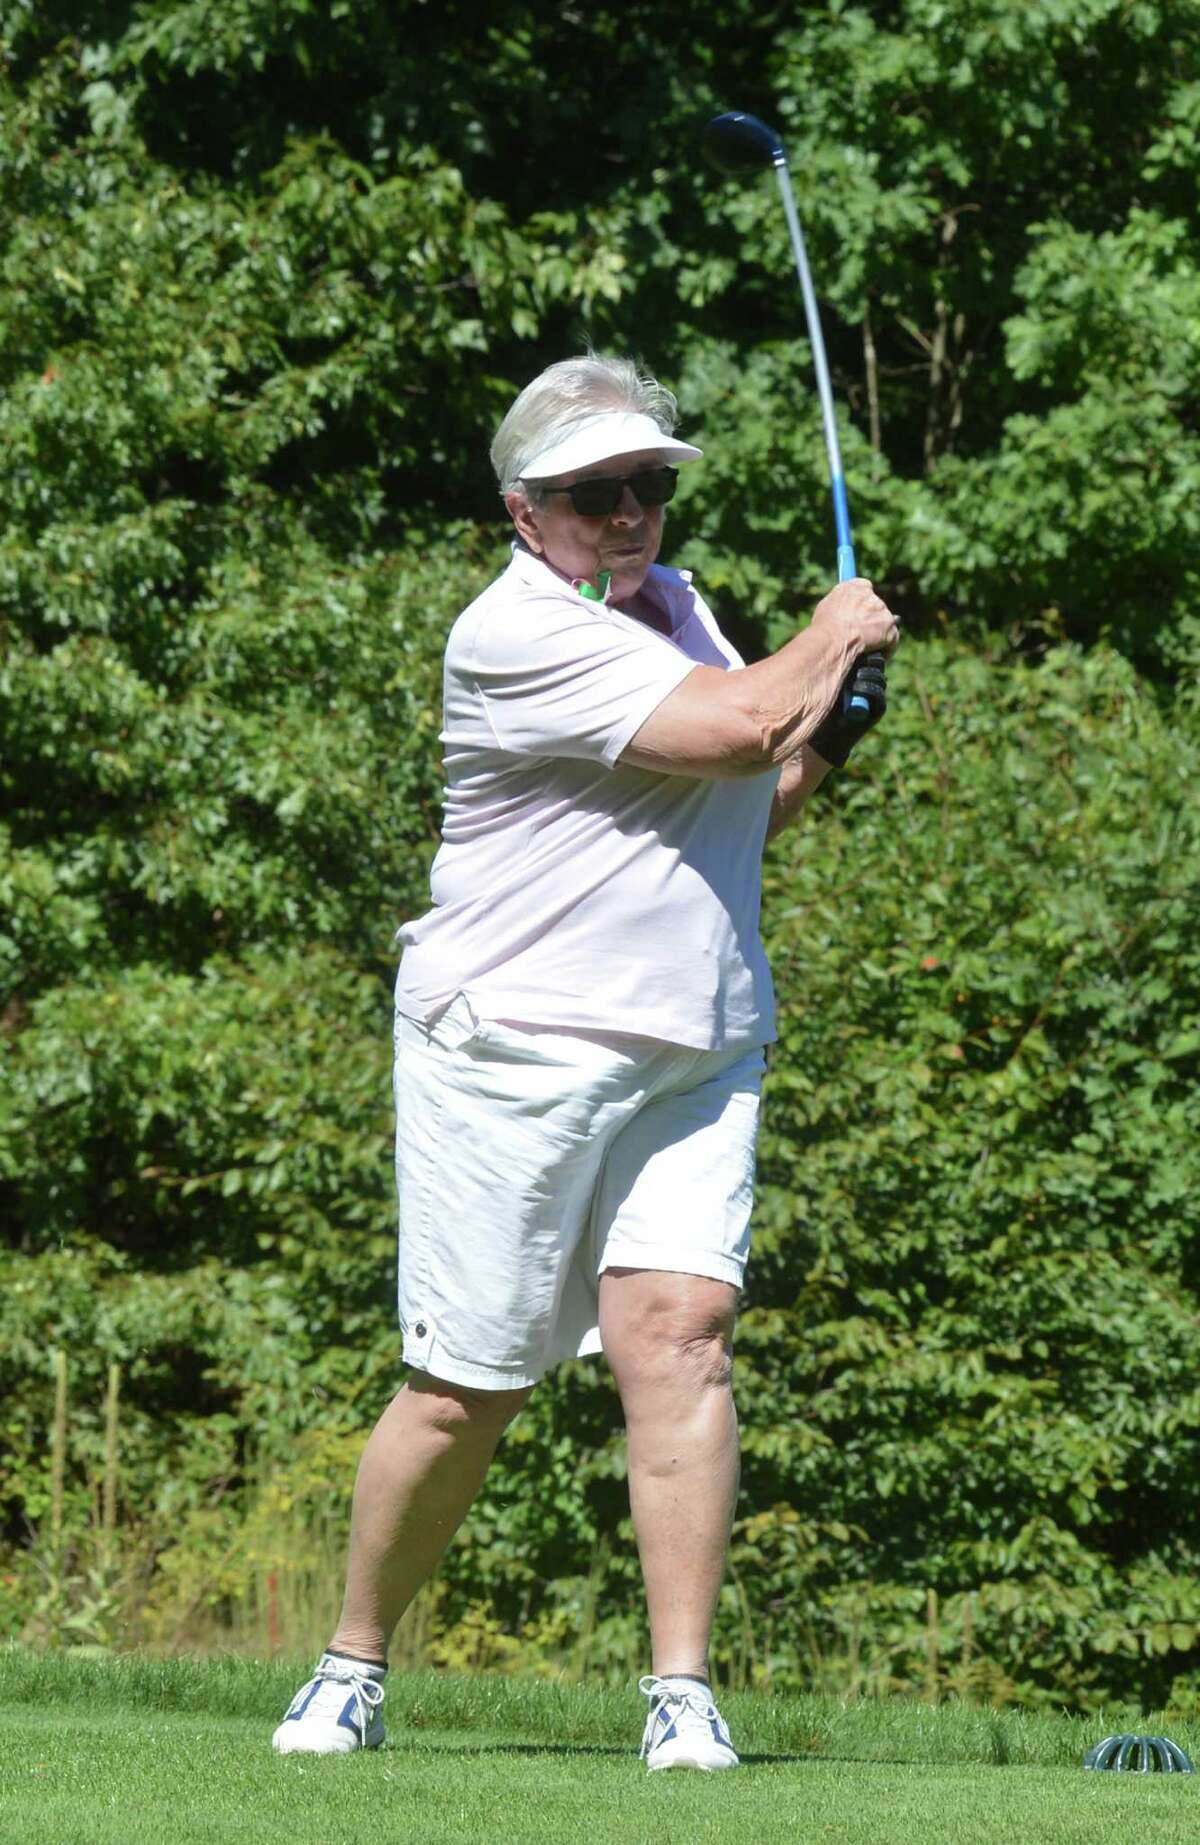 Michael Ness' grandmother Janet Hanna hits off the tee on the 2nd hole during 3rd annual Michael Ness Golf Tournament at Oak Hills Park in Norwalk Conn. on Monday September 12, 2016. The charity event benefits the Connecticut Burn Center at Bridgeport Hospital where Michael was treated for burns he suffered in a Norwalk house fire in 2013.